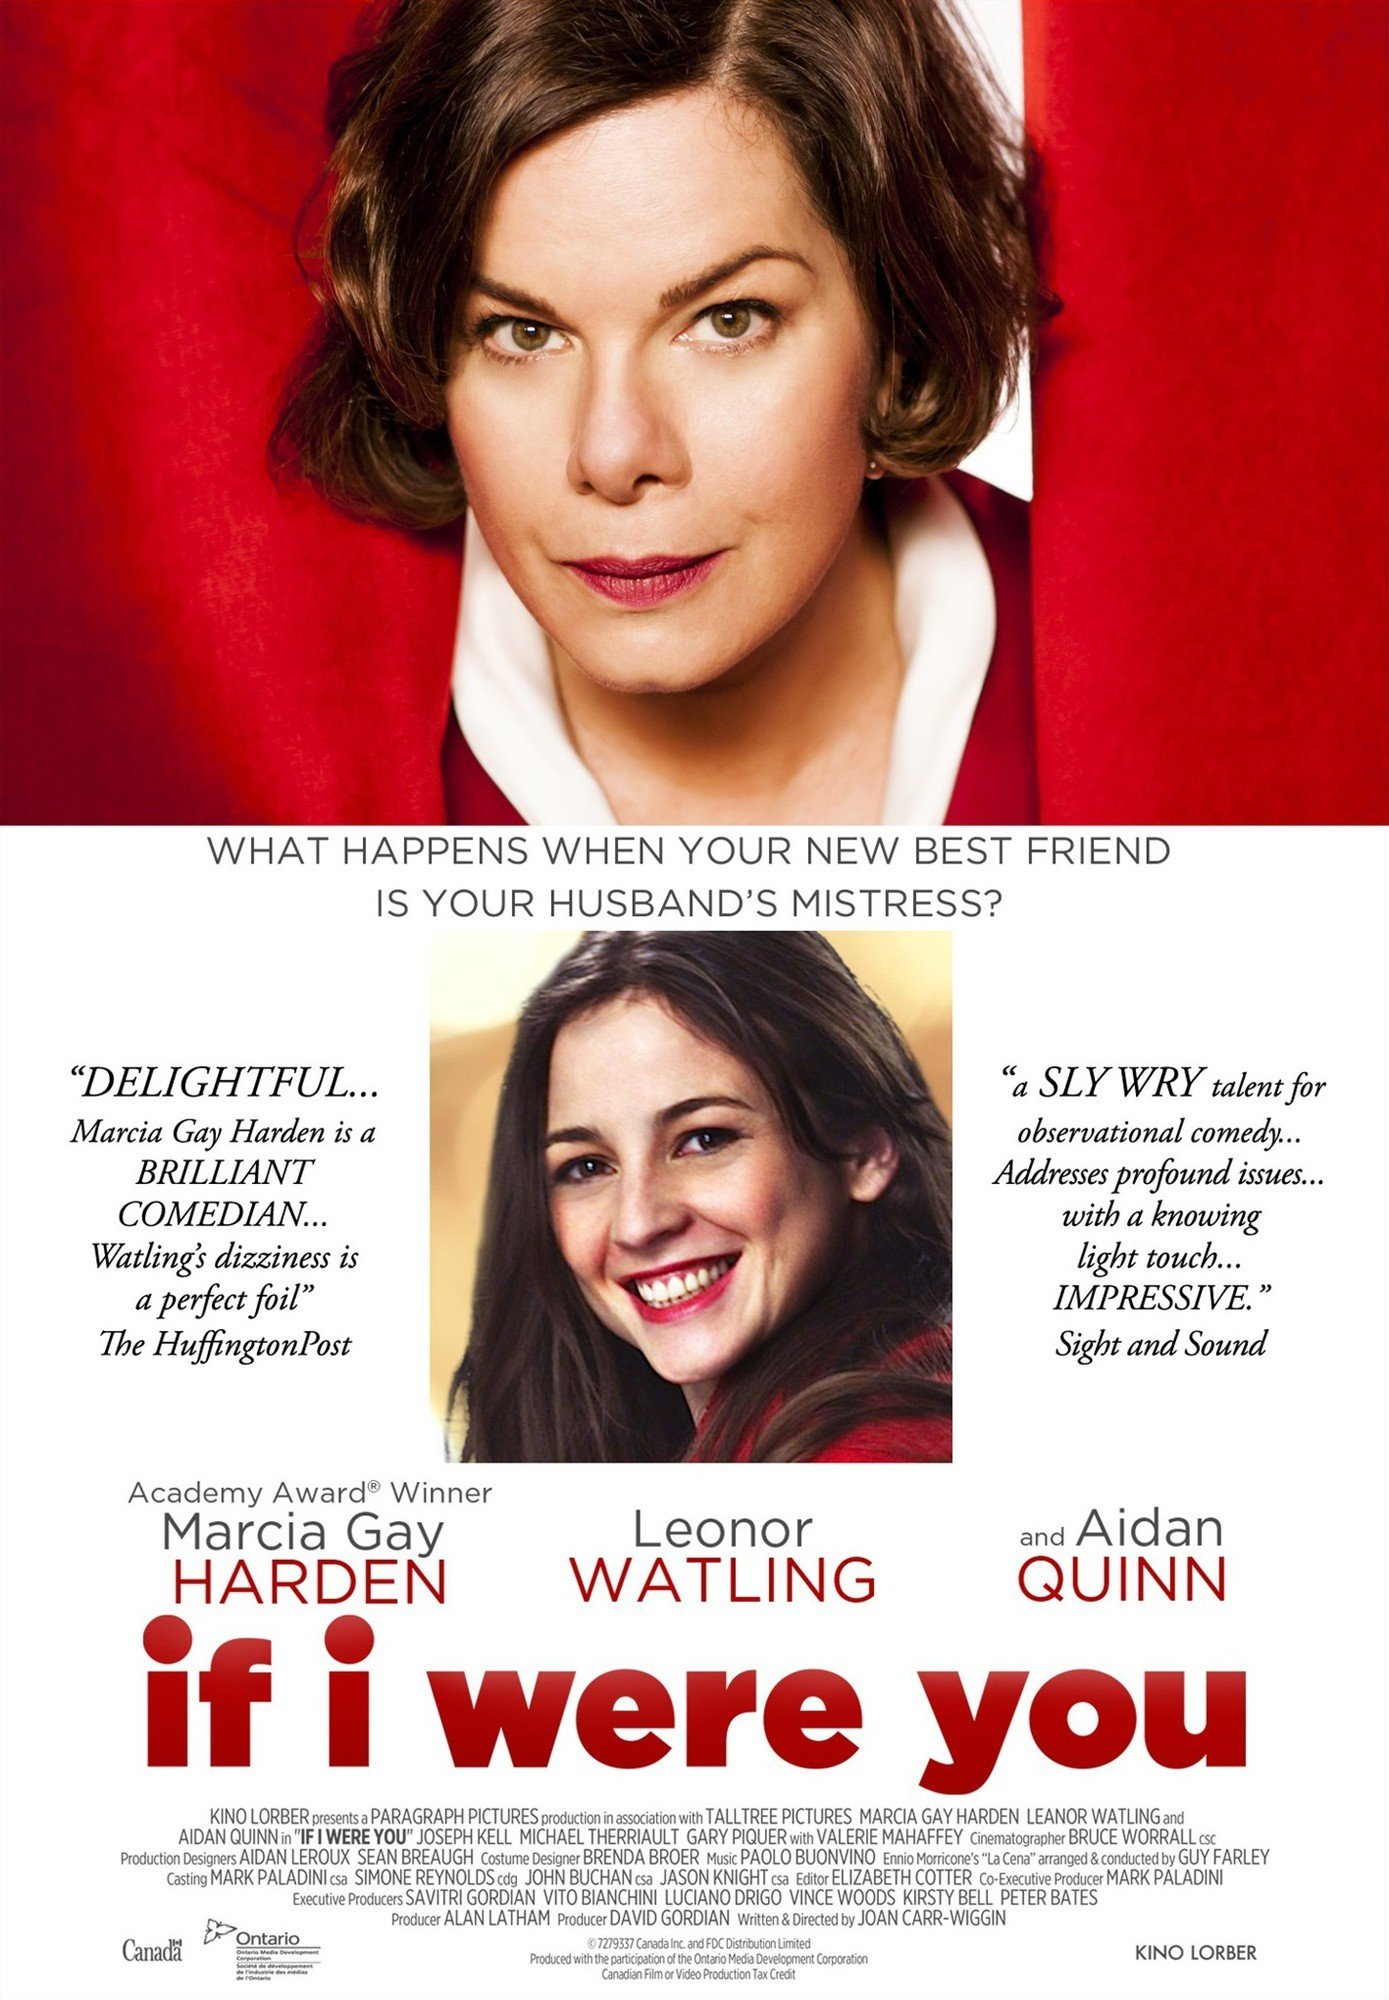 Miniature of movie poster for If I Were You, showing Marcia Gay Harden poking her head through a red theatre curtain, and a picture of her character's husband's mistress below.